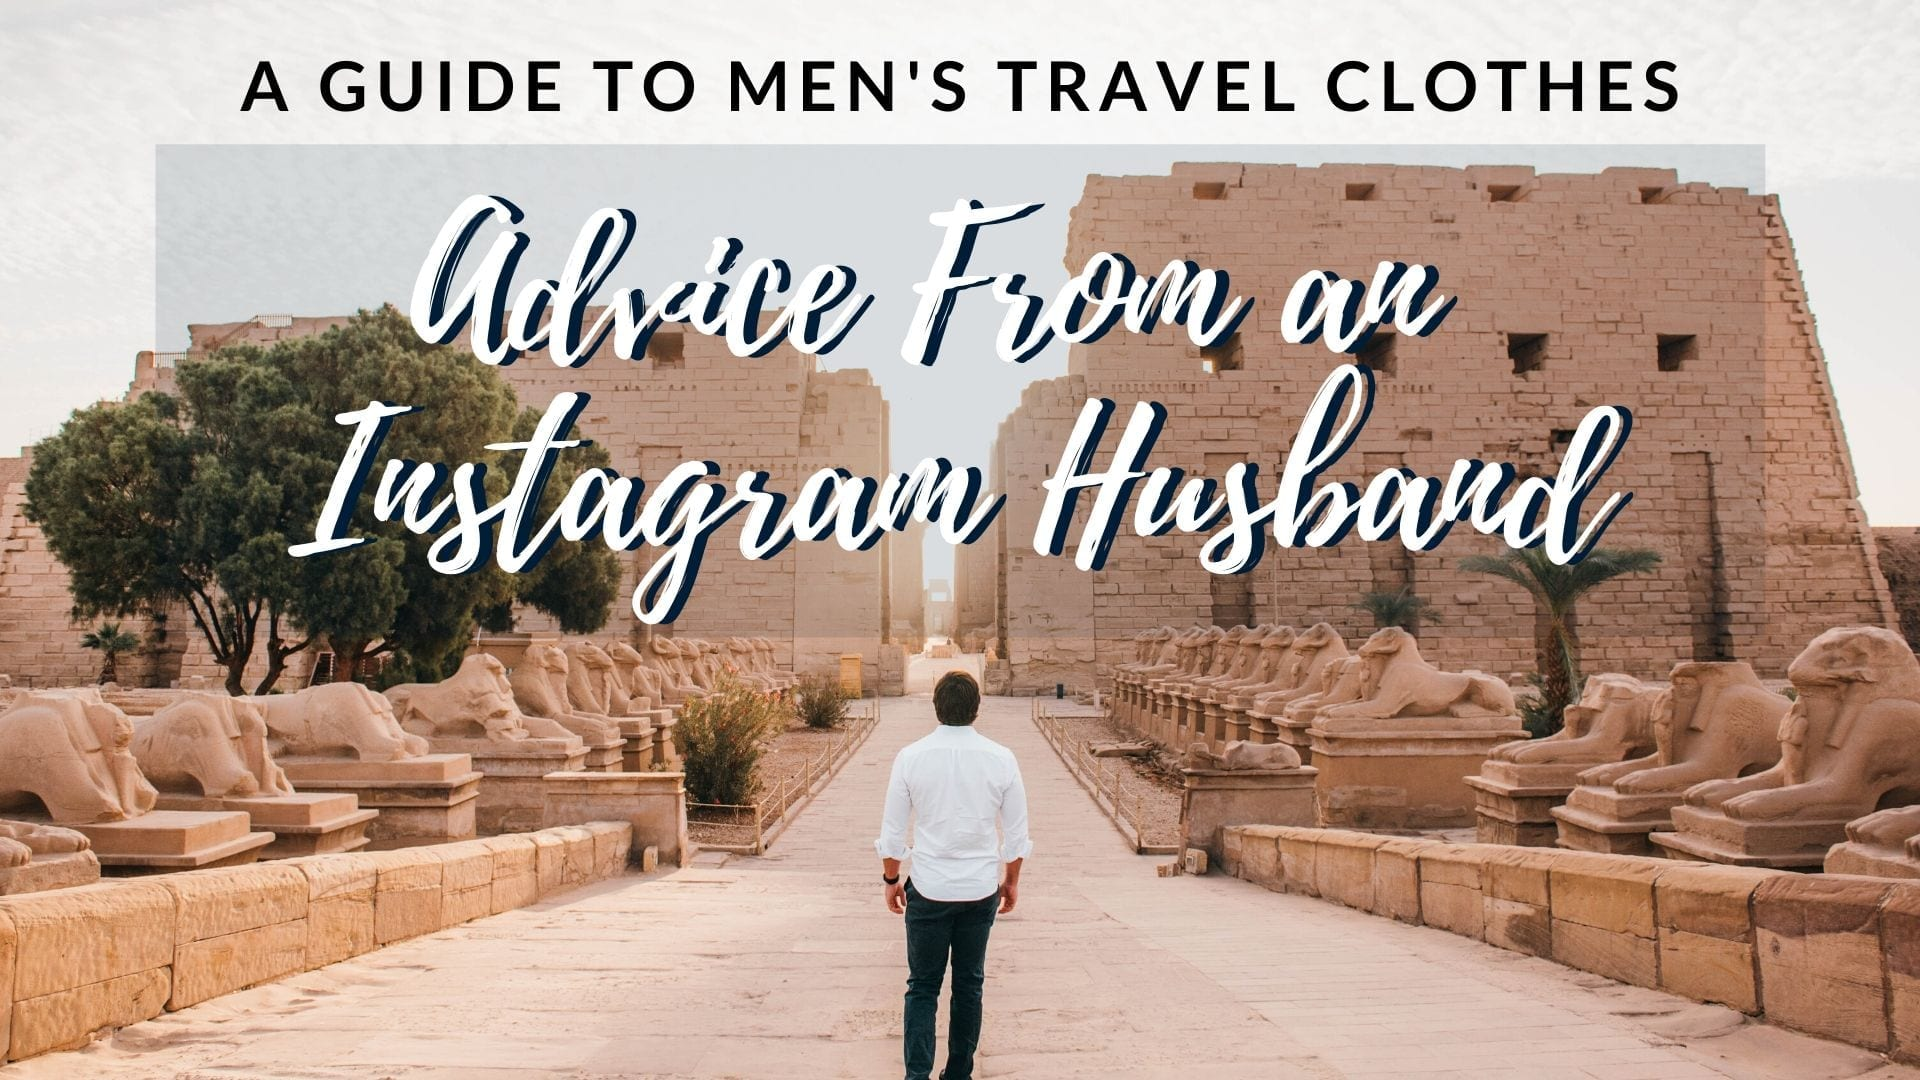 Travel clothes for men